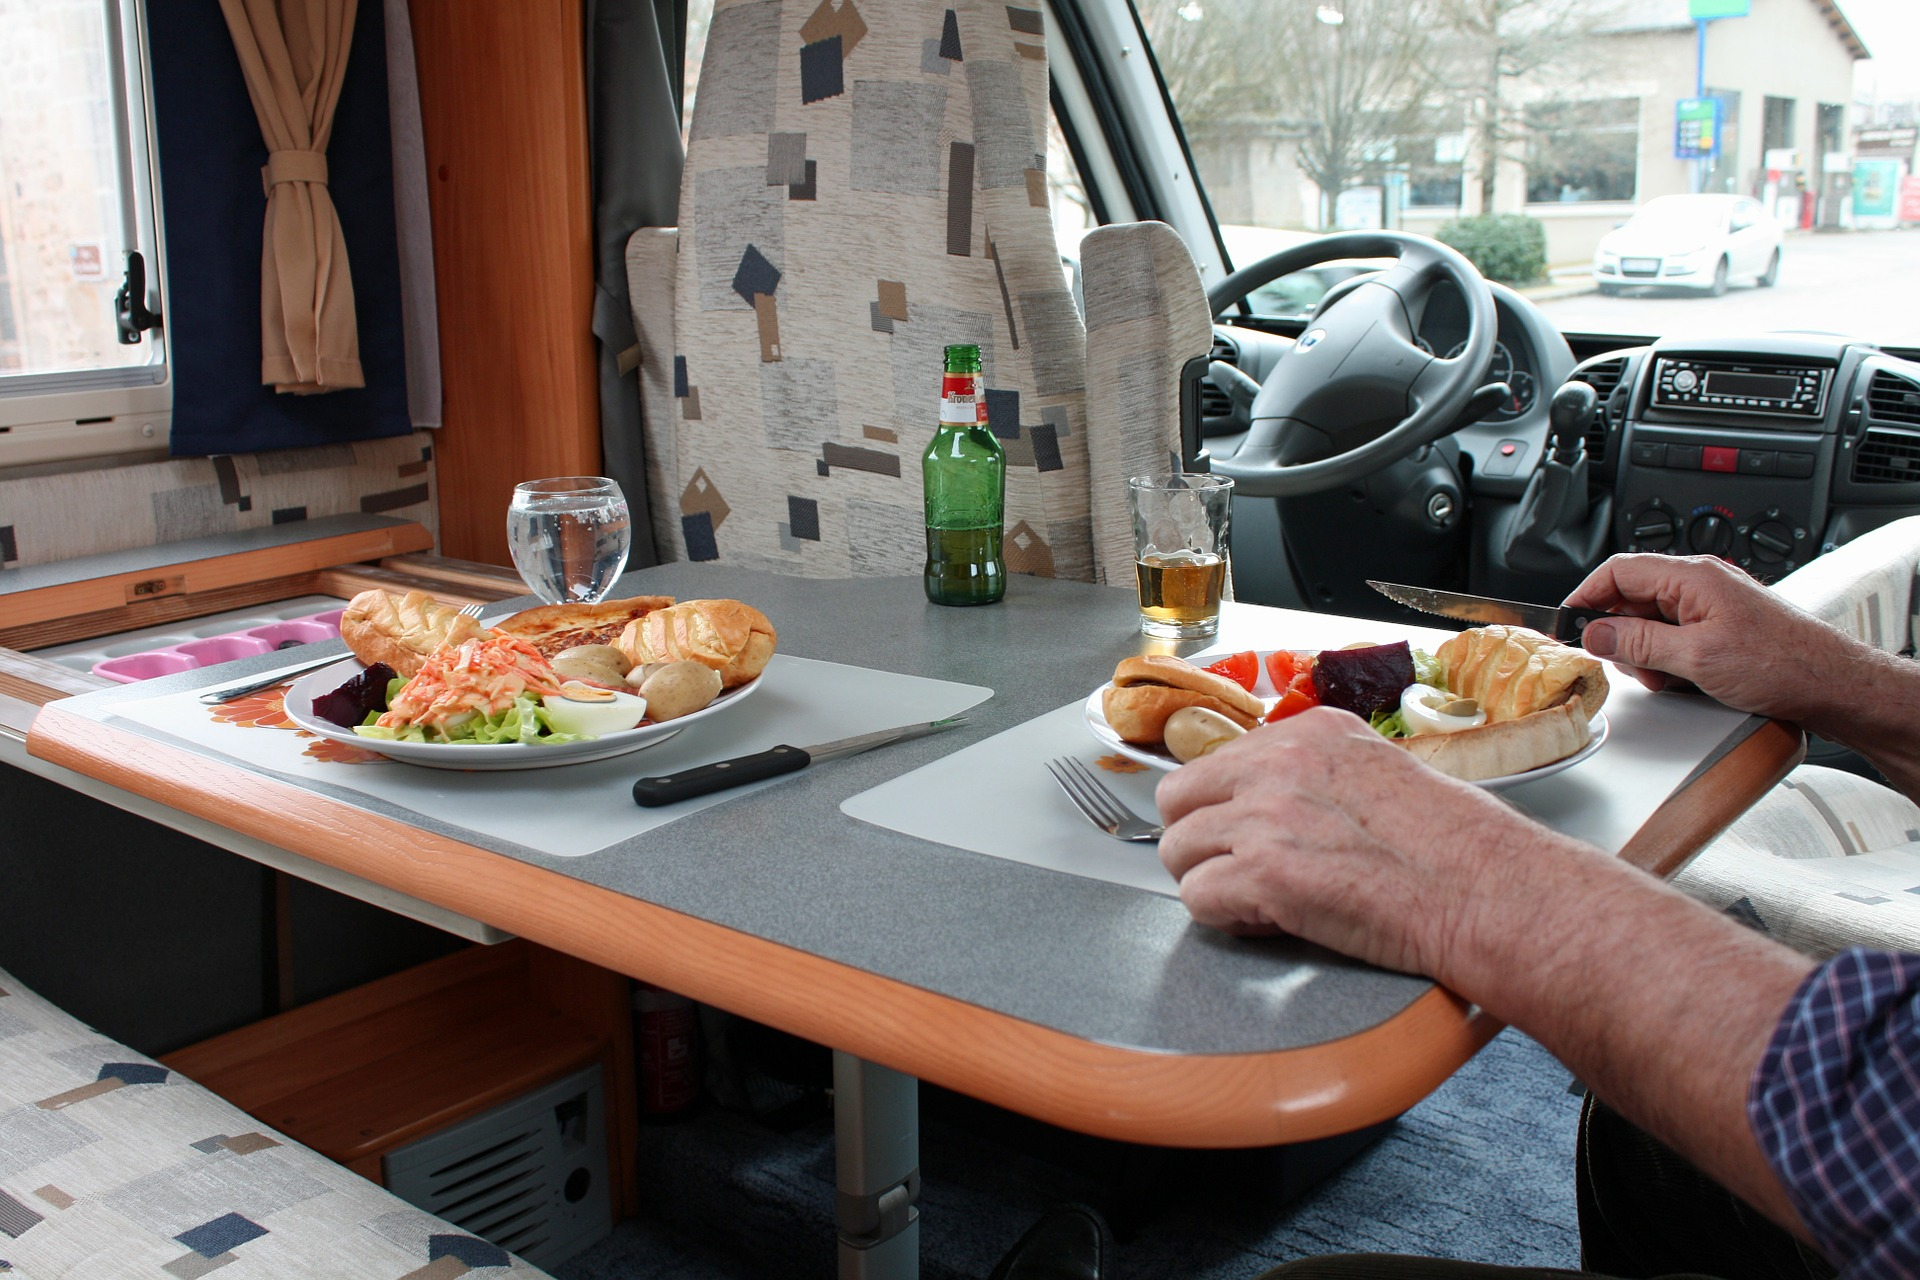 a meal set up in the interior of a camper van